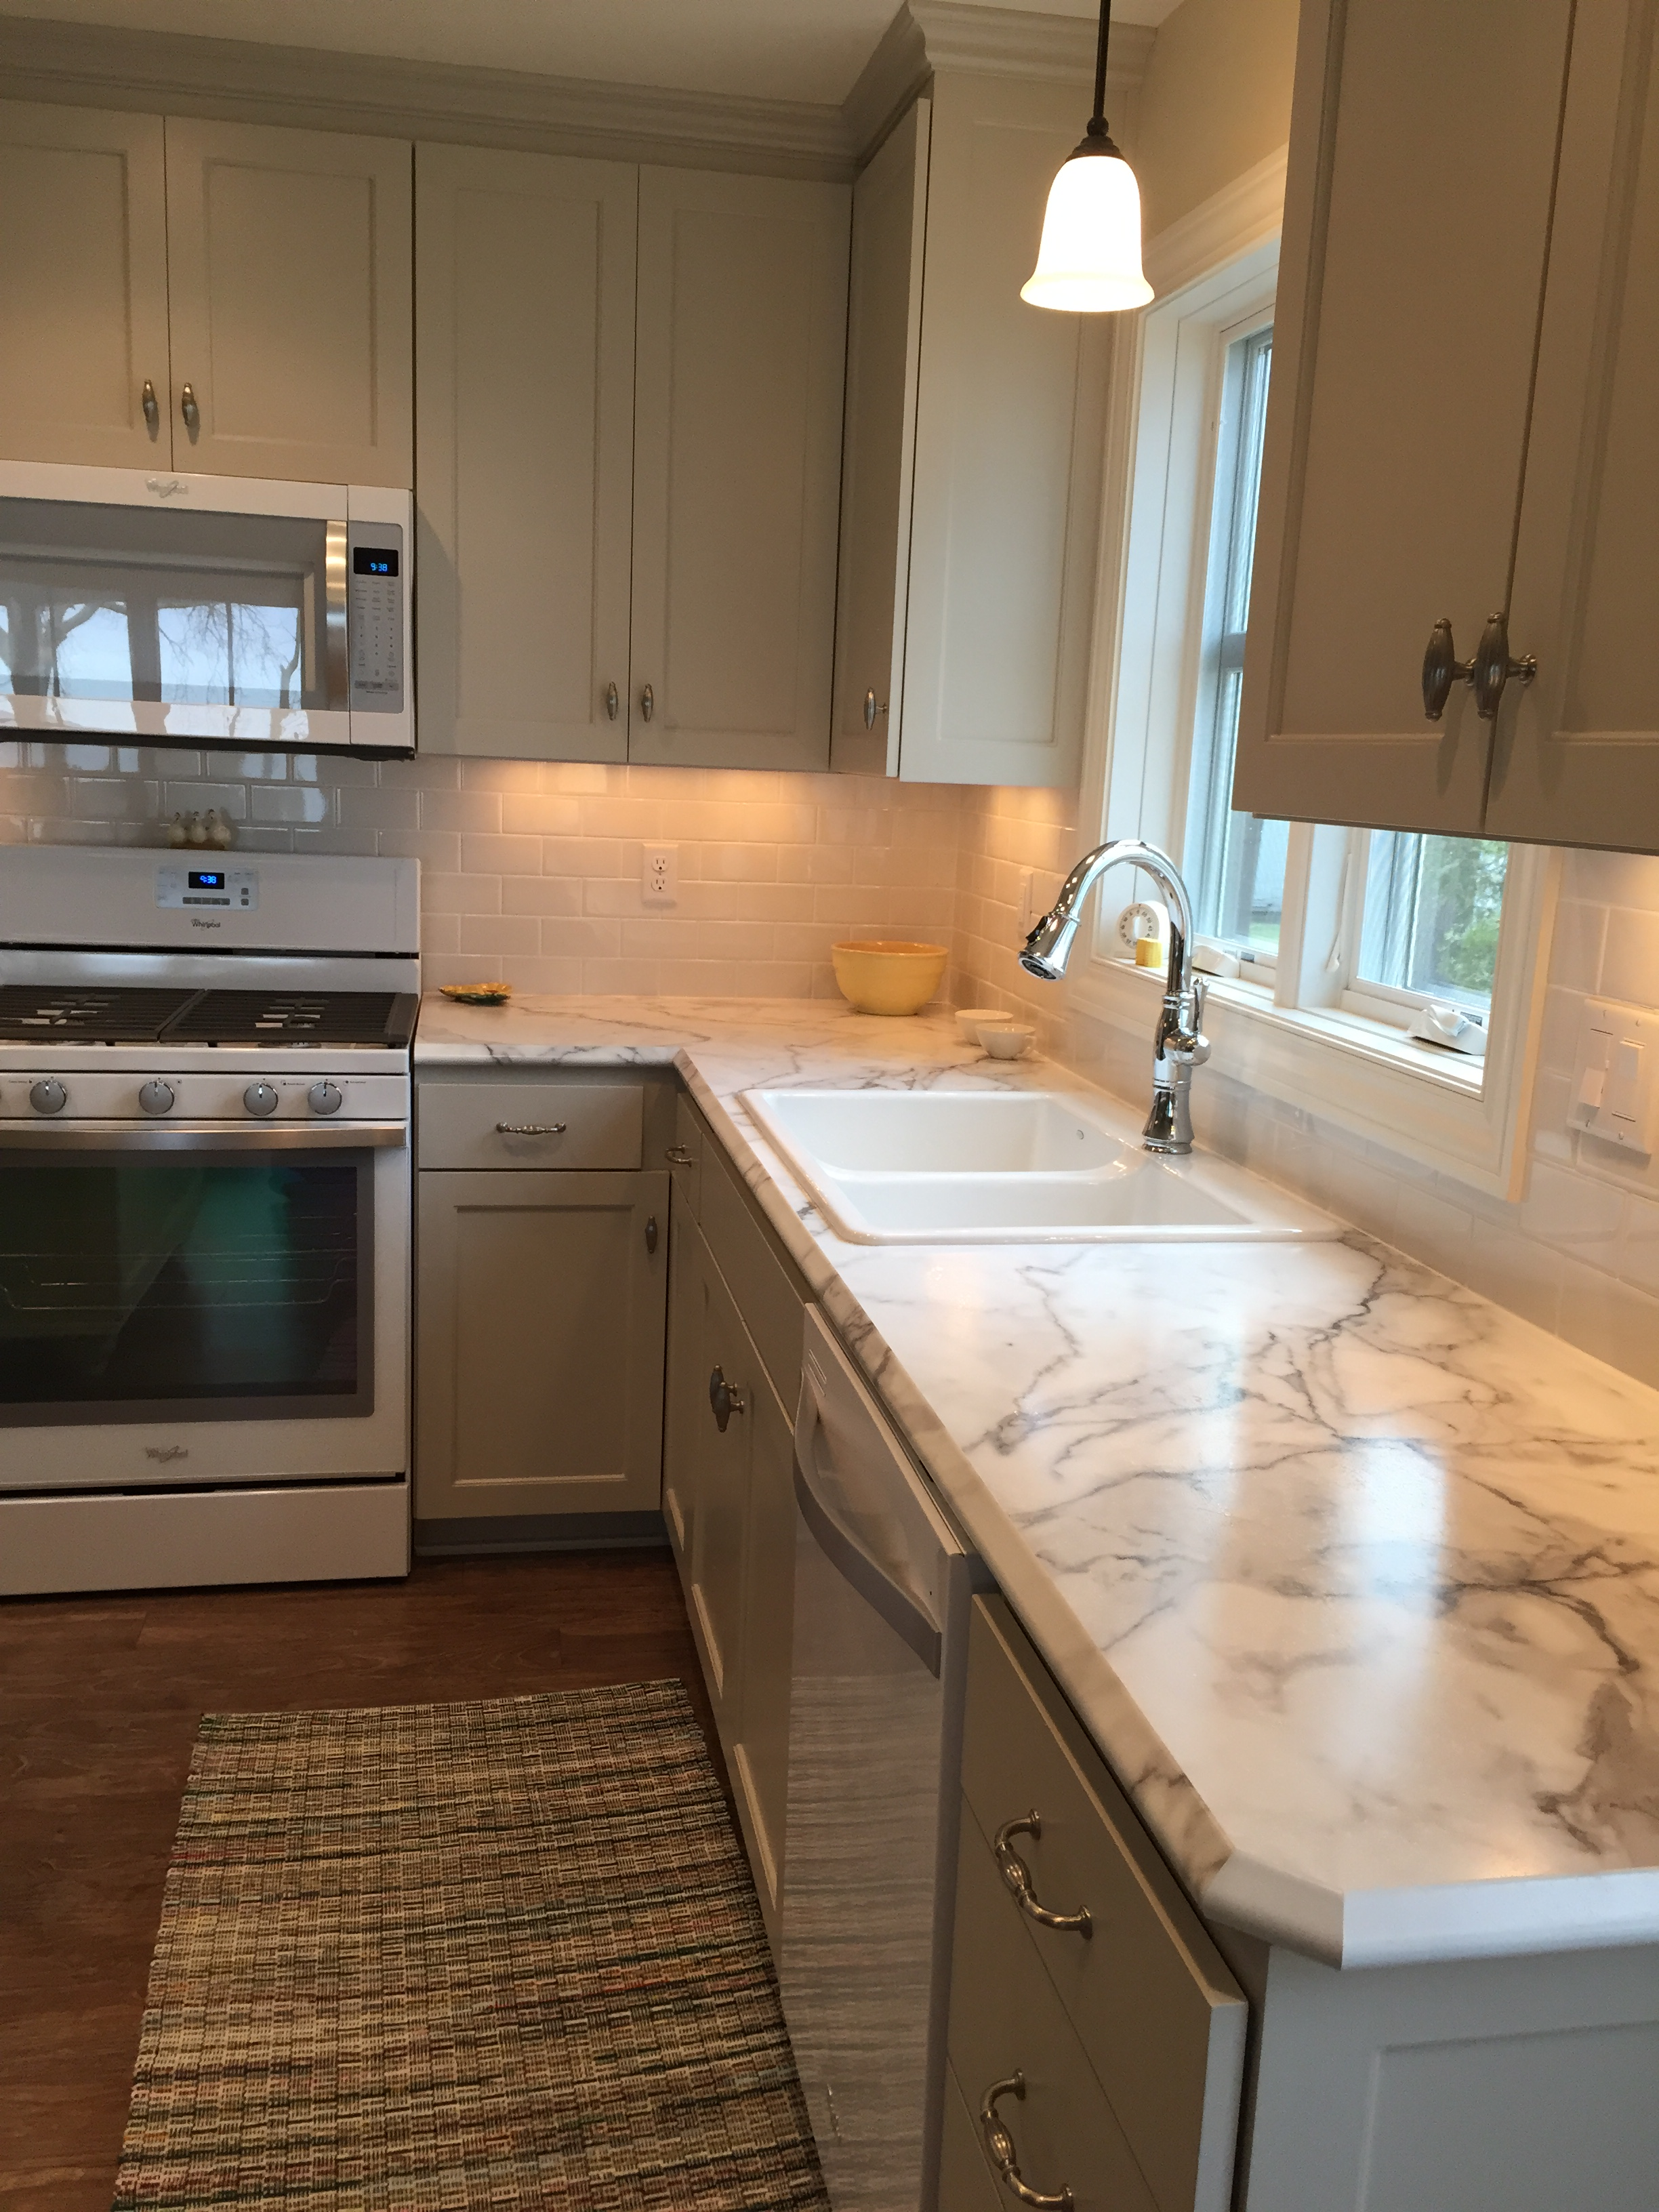 to foot a for granite counters quartz make faux kitchen contact laminate formica paper cost countertops countertop how counc installation sheets marble prices counter tops countertopc lowes corian